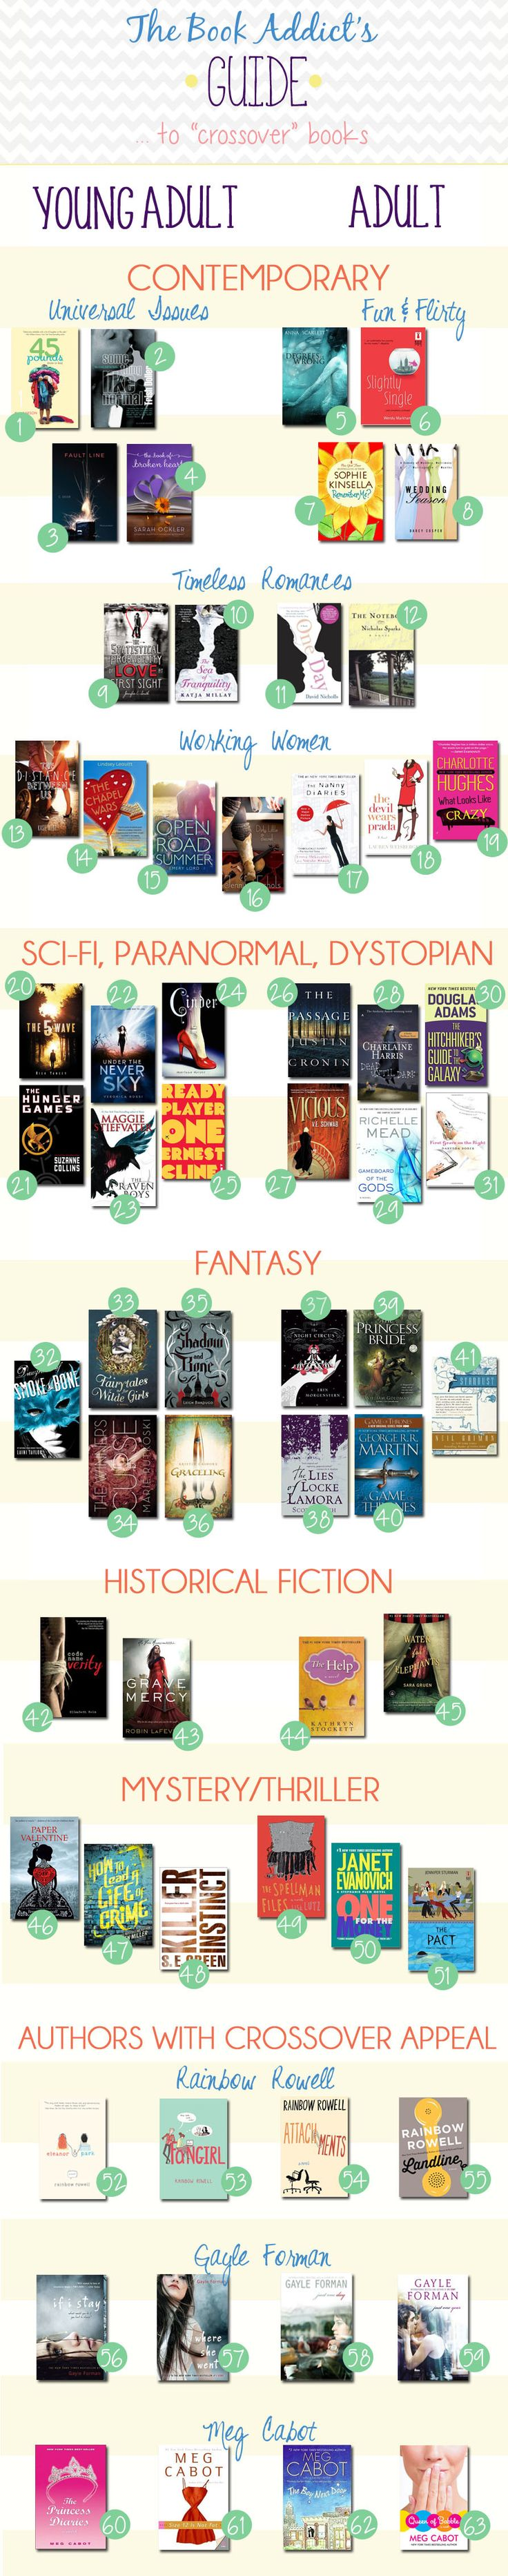 "If you're a YA reader looking into adult books or an adult looking to try YA, check out this ""crossover"" guide for a recommendation on where to start!"